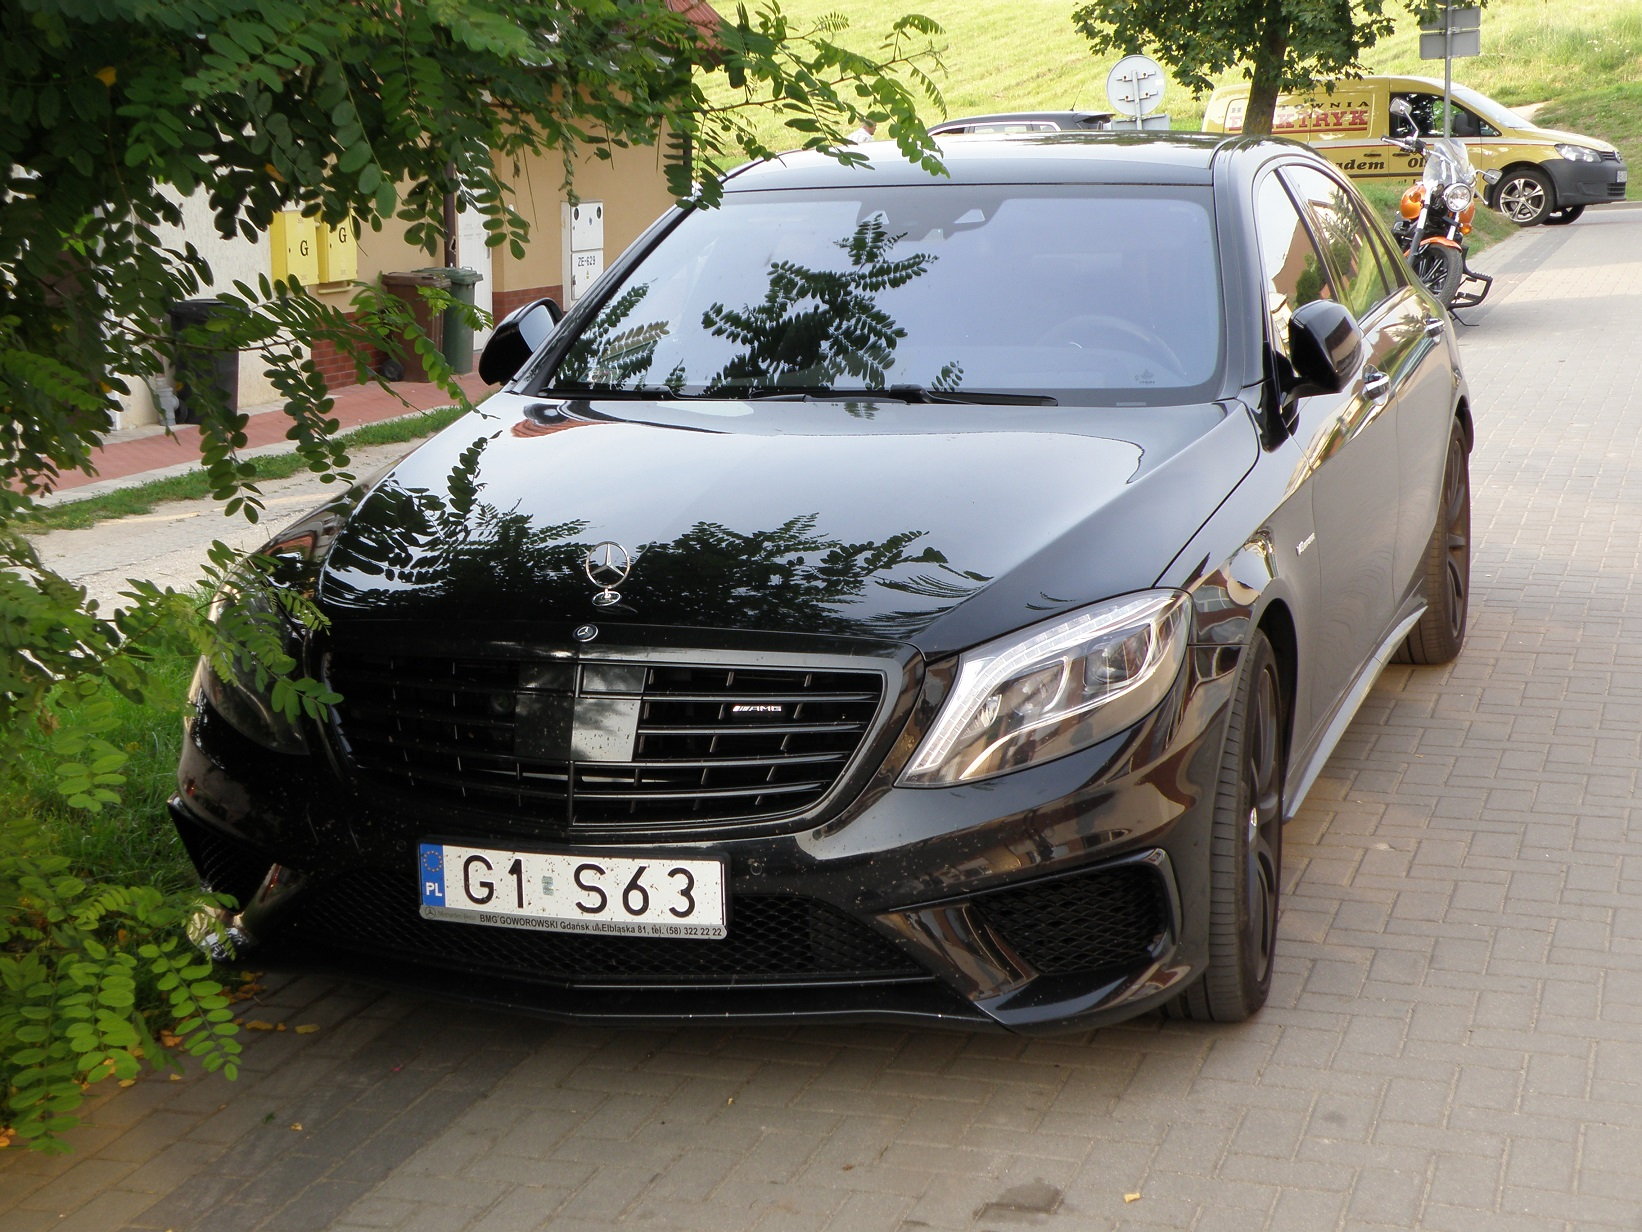 http://124coupe.pl/hosting/images/1471726536.jpg